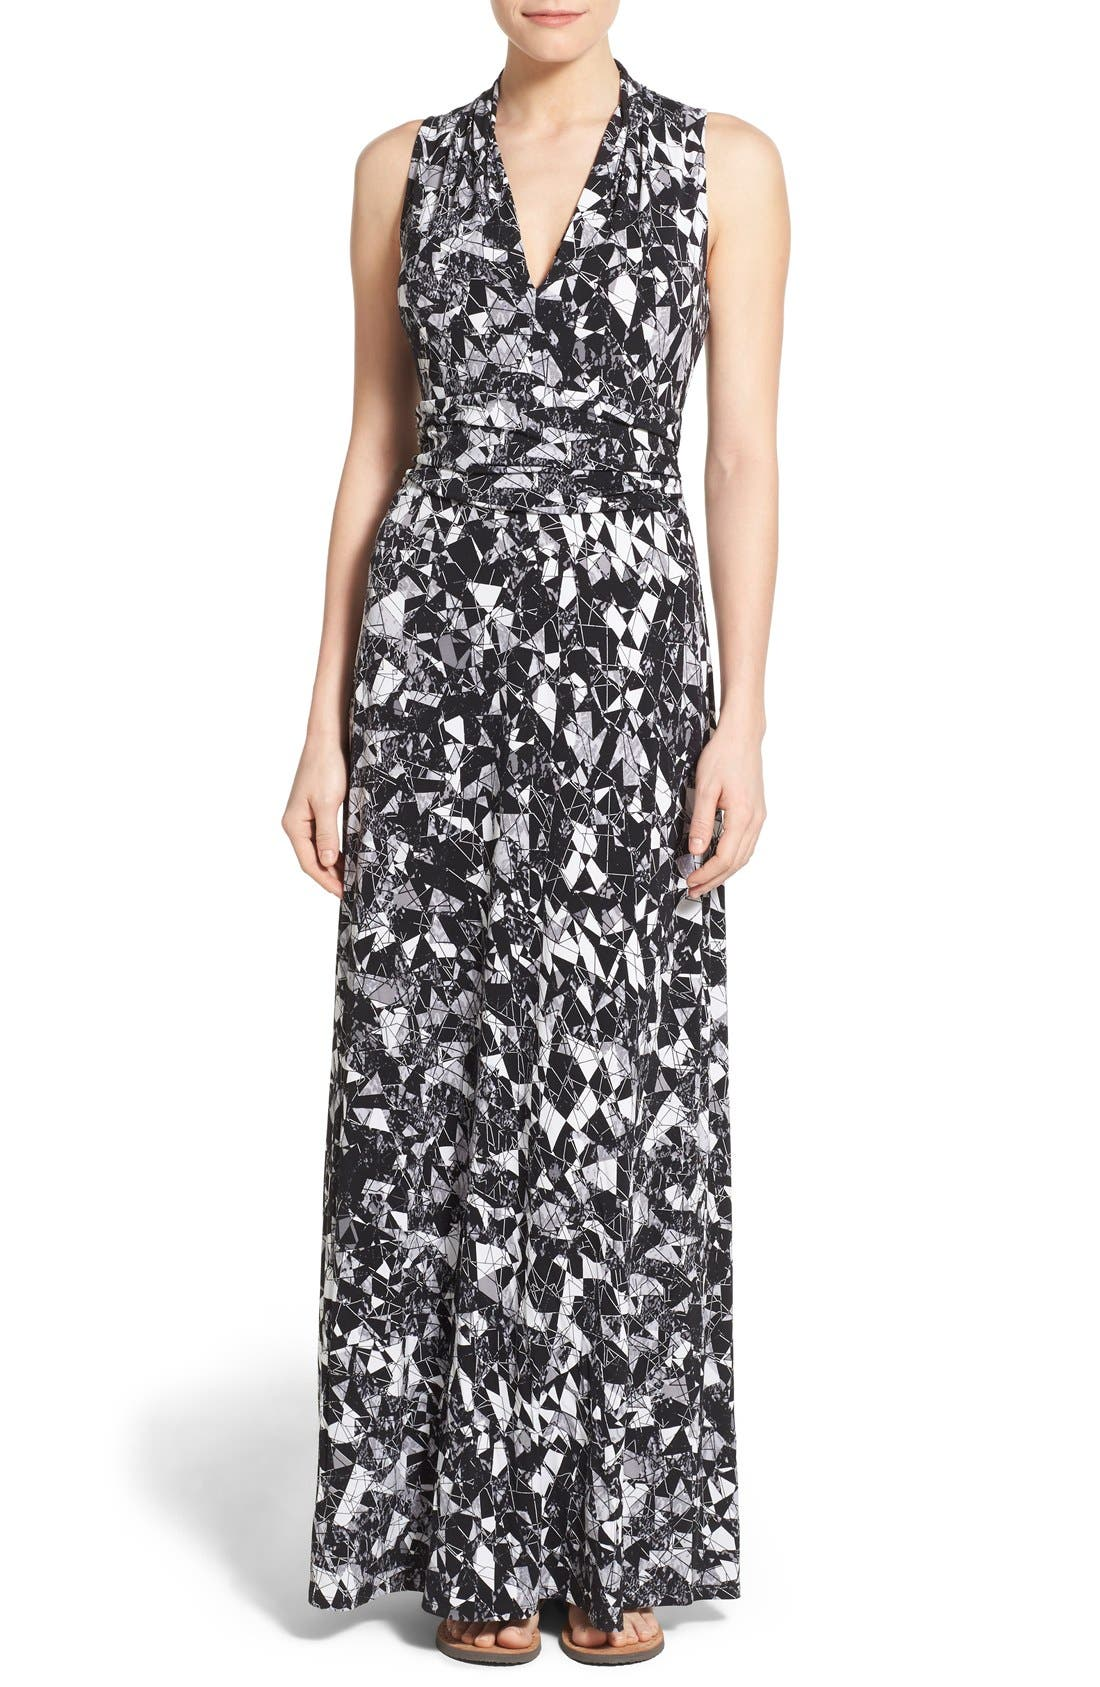 Alternate Image 1 Selected - Vince Camuto Print Jersey Cutaway Shoulder Maxi Dress (Petite)